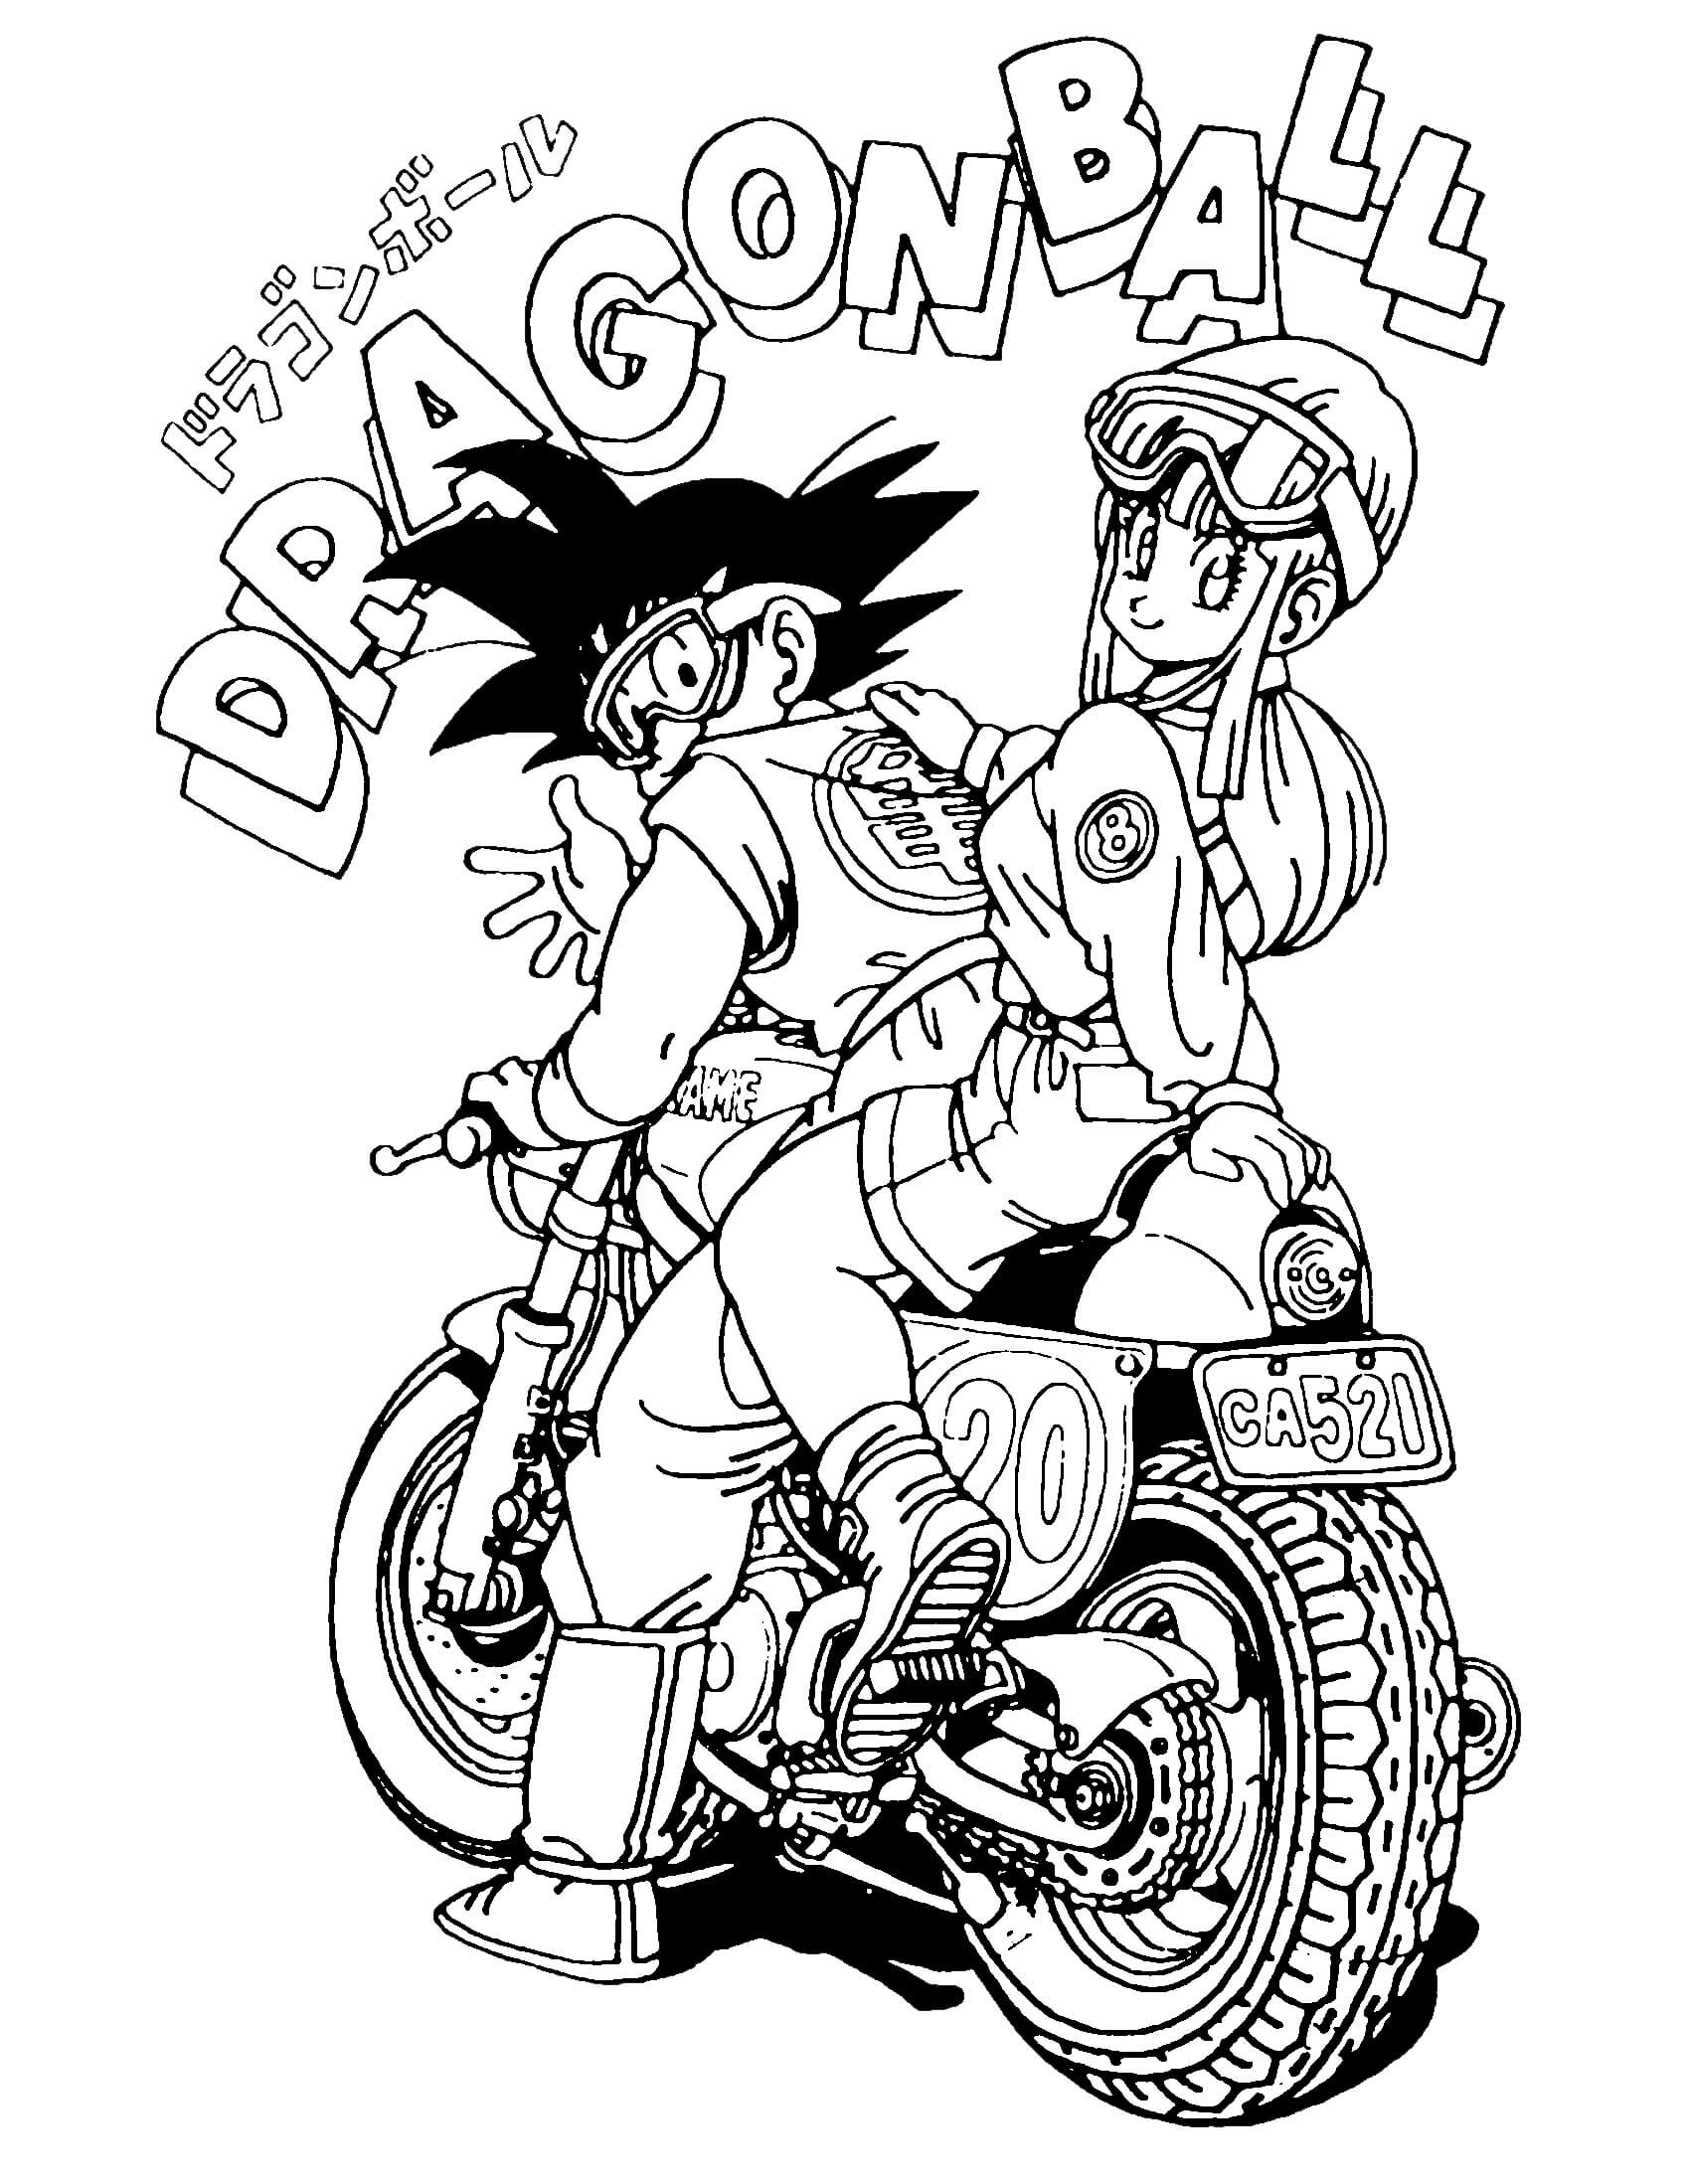 Dragon ball z for kids - Dragon Ball Z - Coloring pages for kids